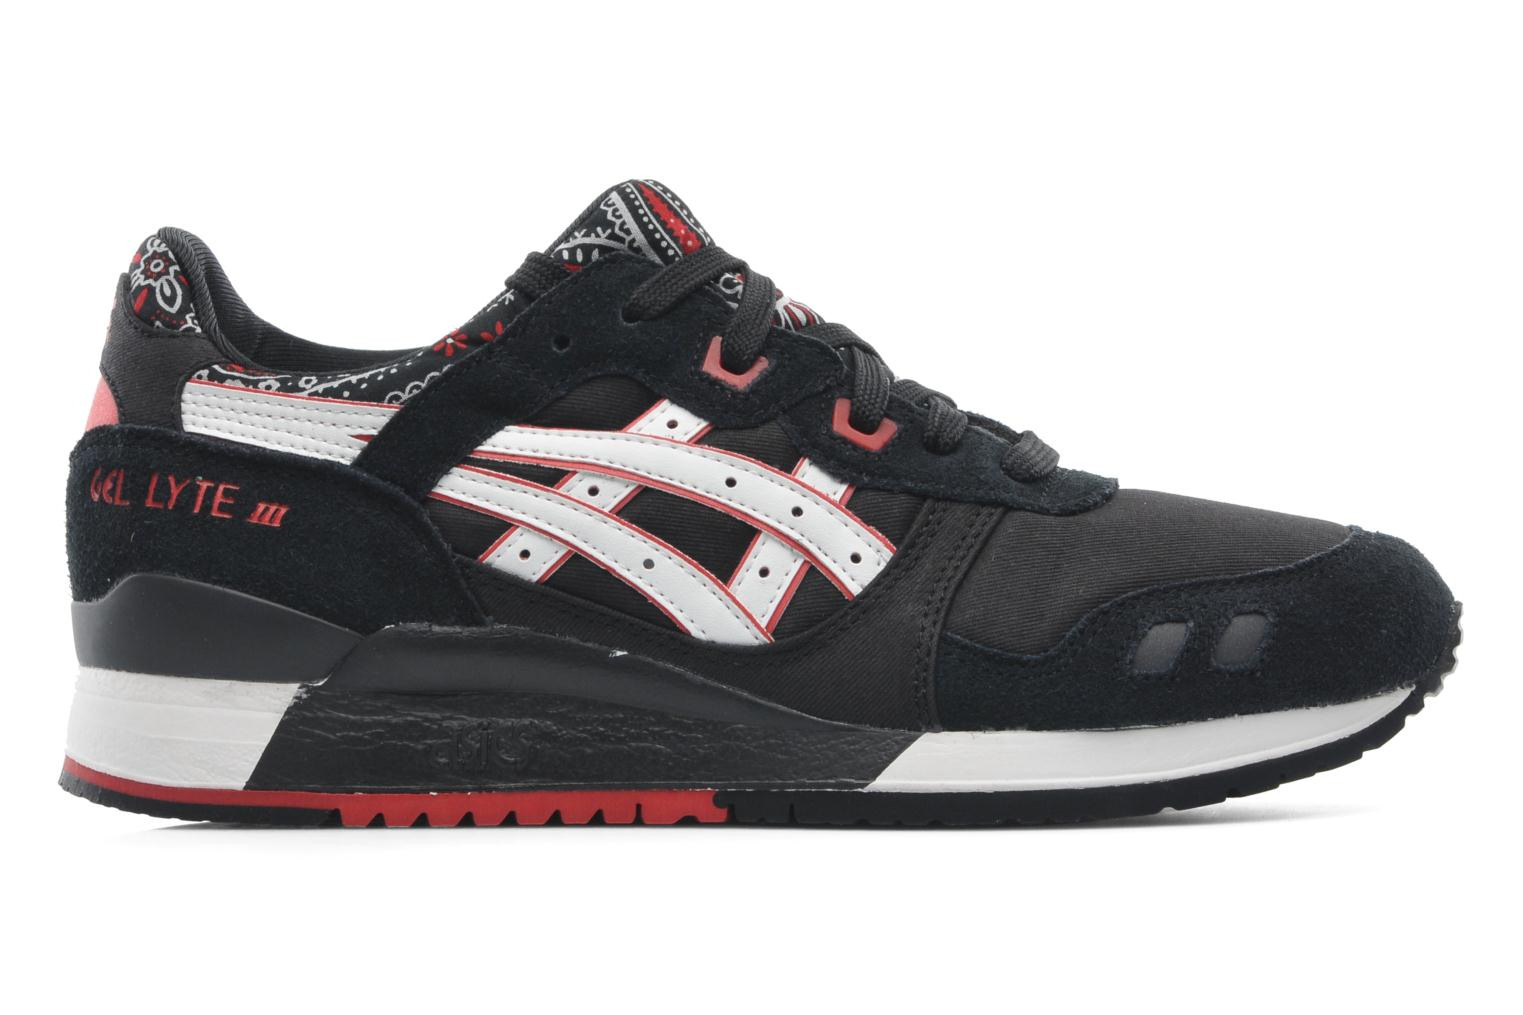 Gel-lyte III Black/white